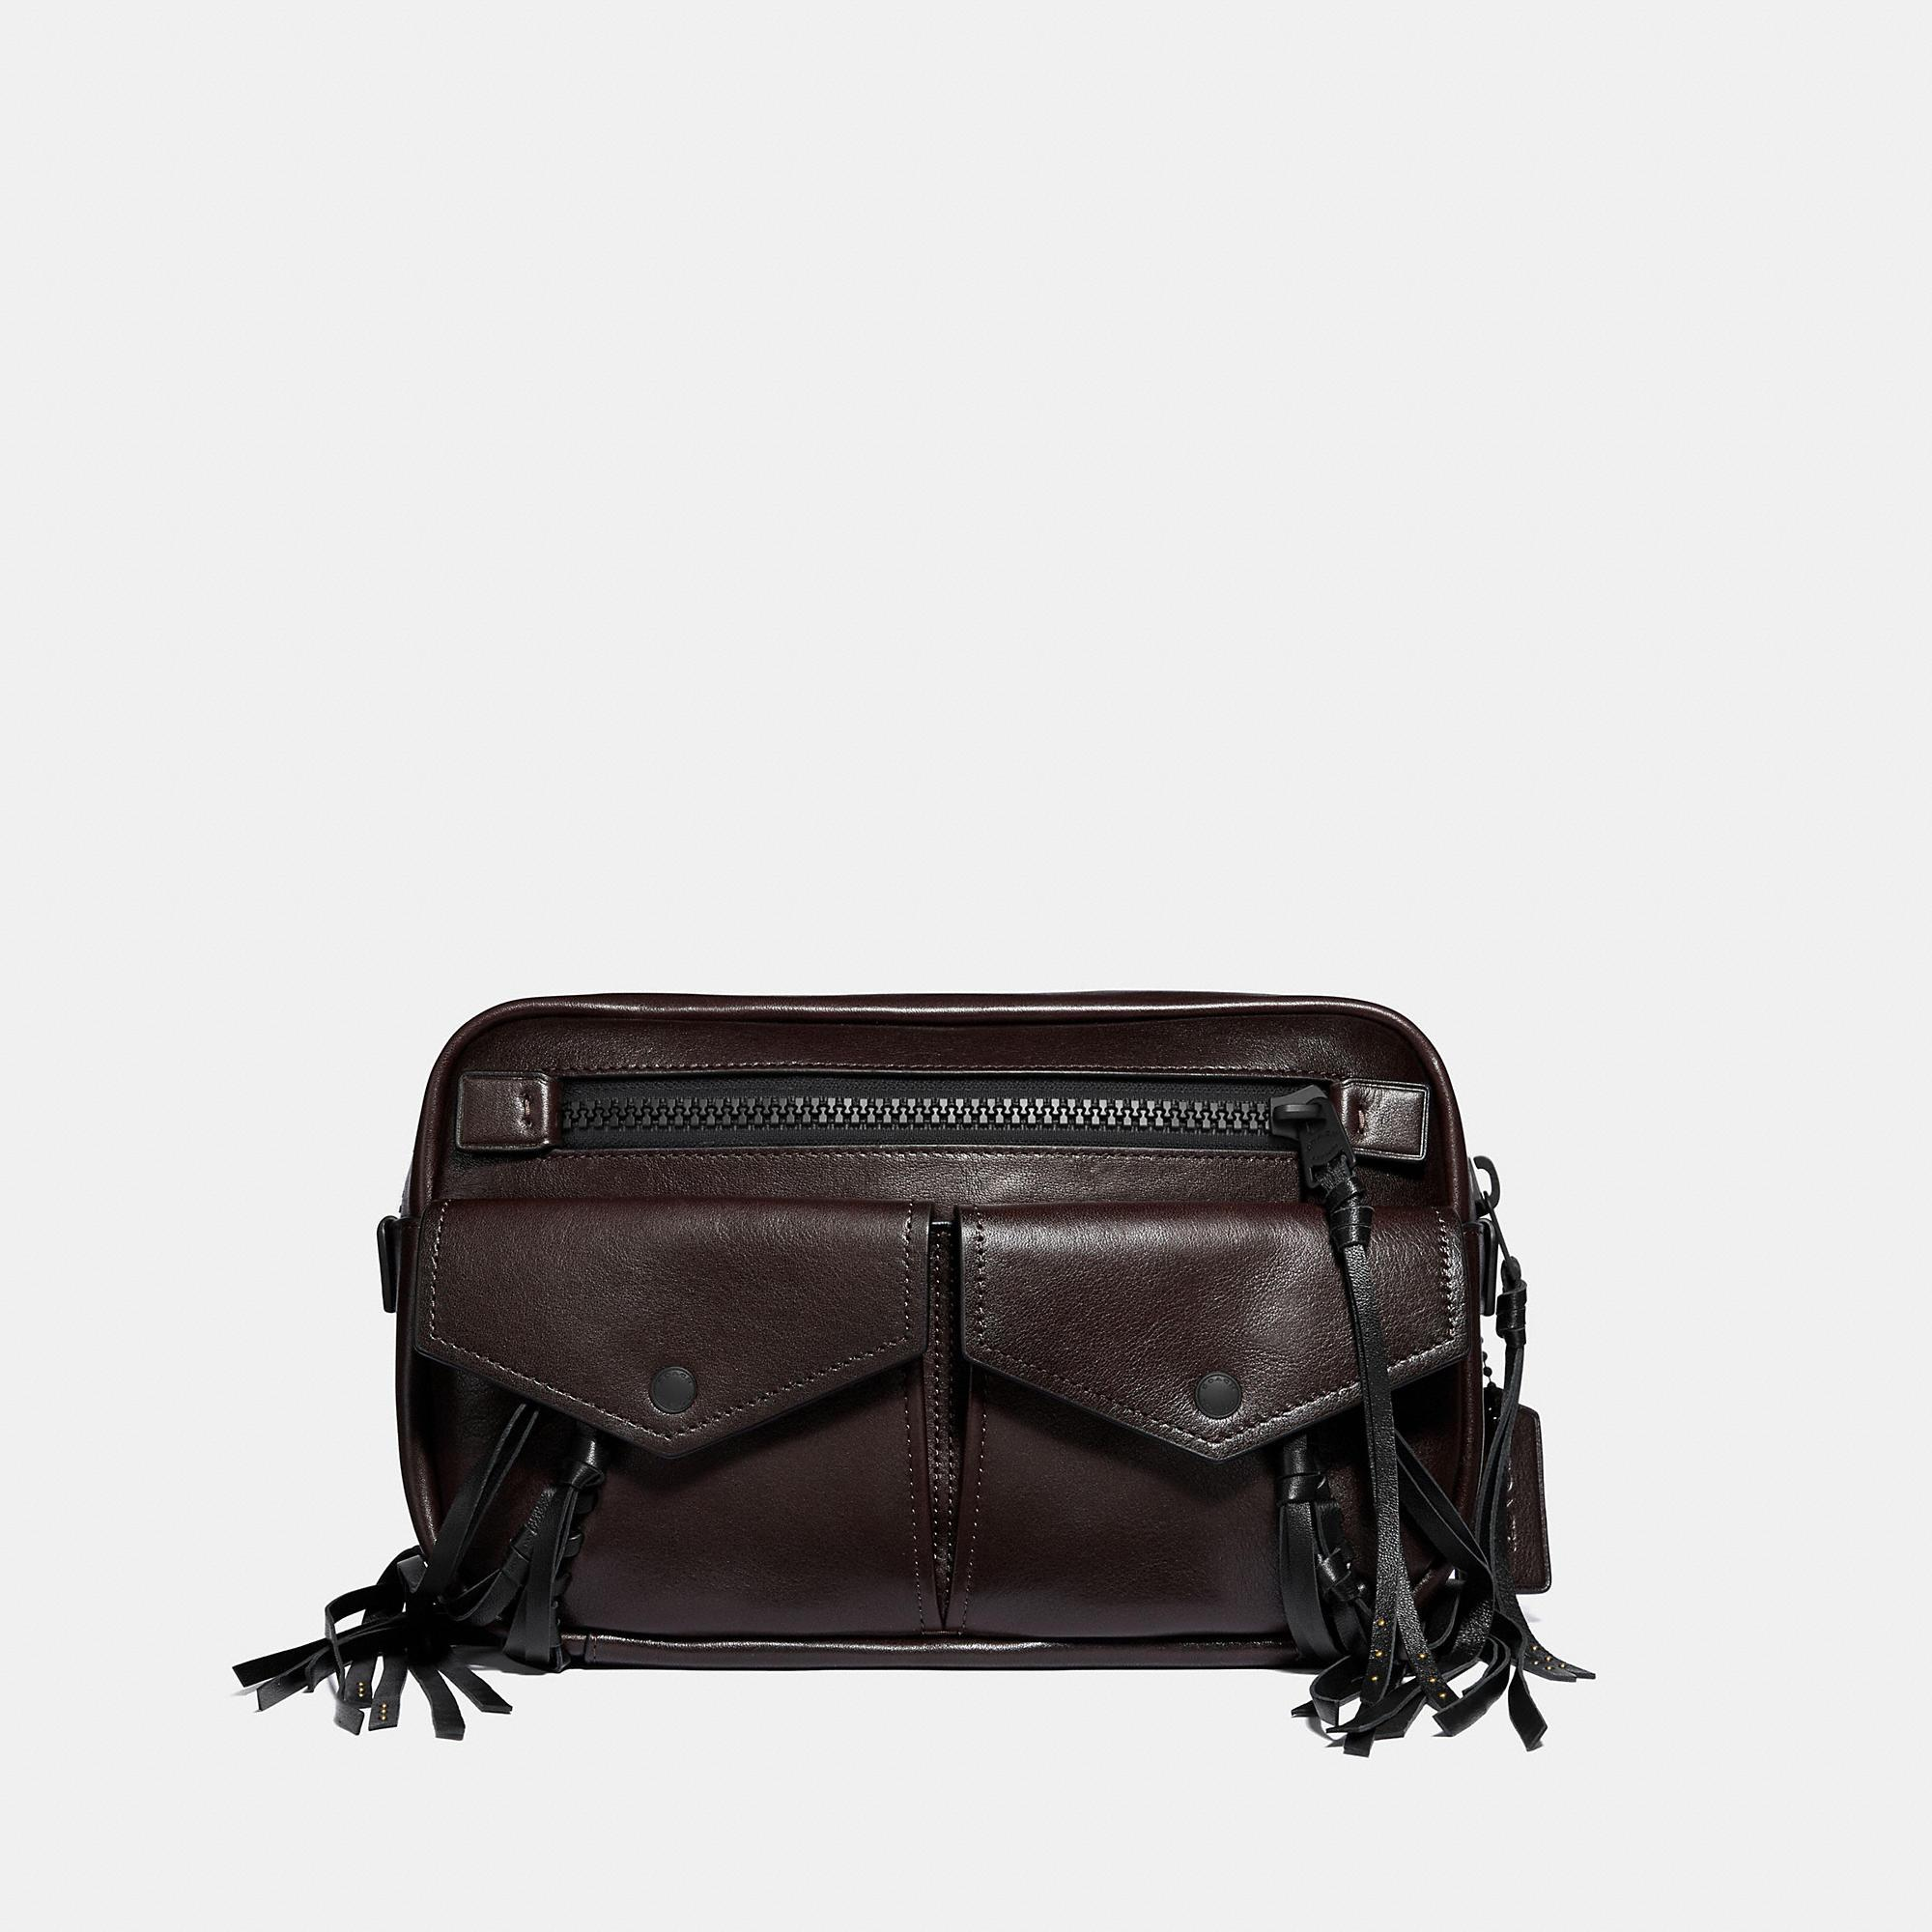 e5714e4250 Lyst - COACH Utility Belt Bag 25 With Whipstitch in Black for Men